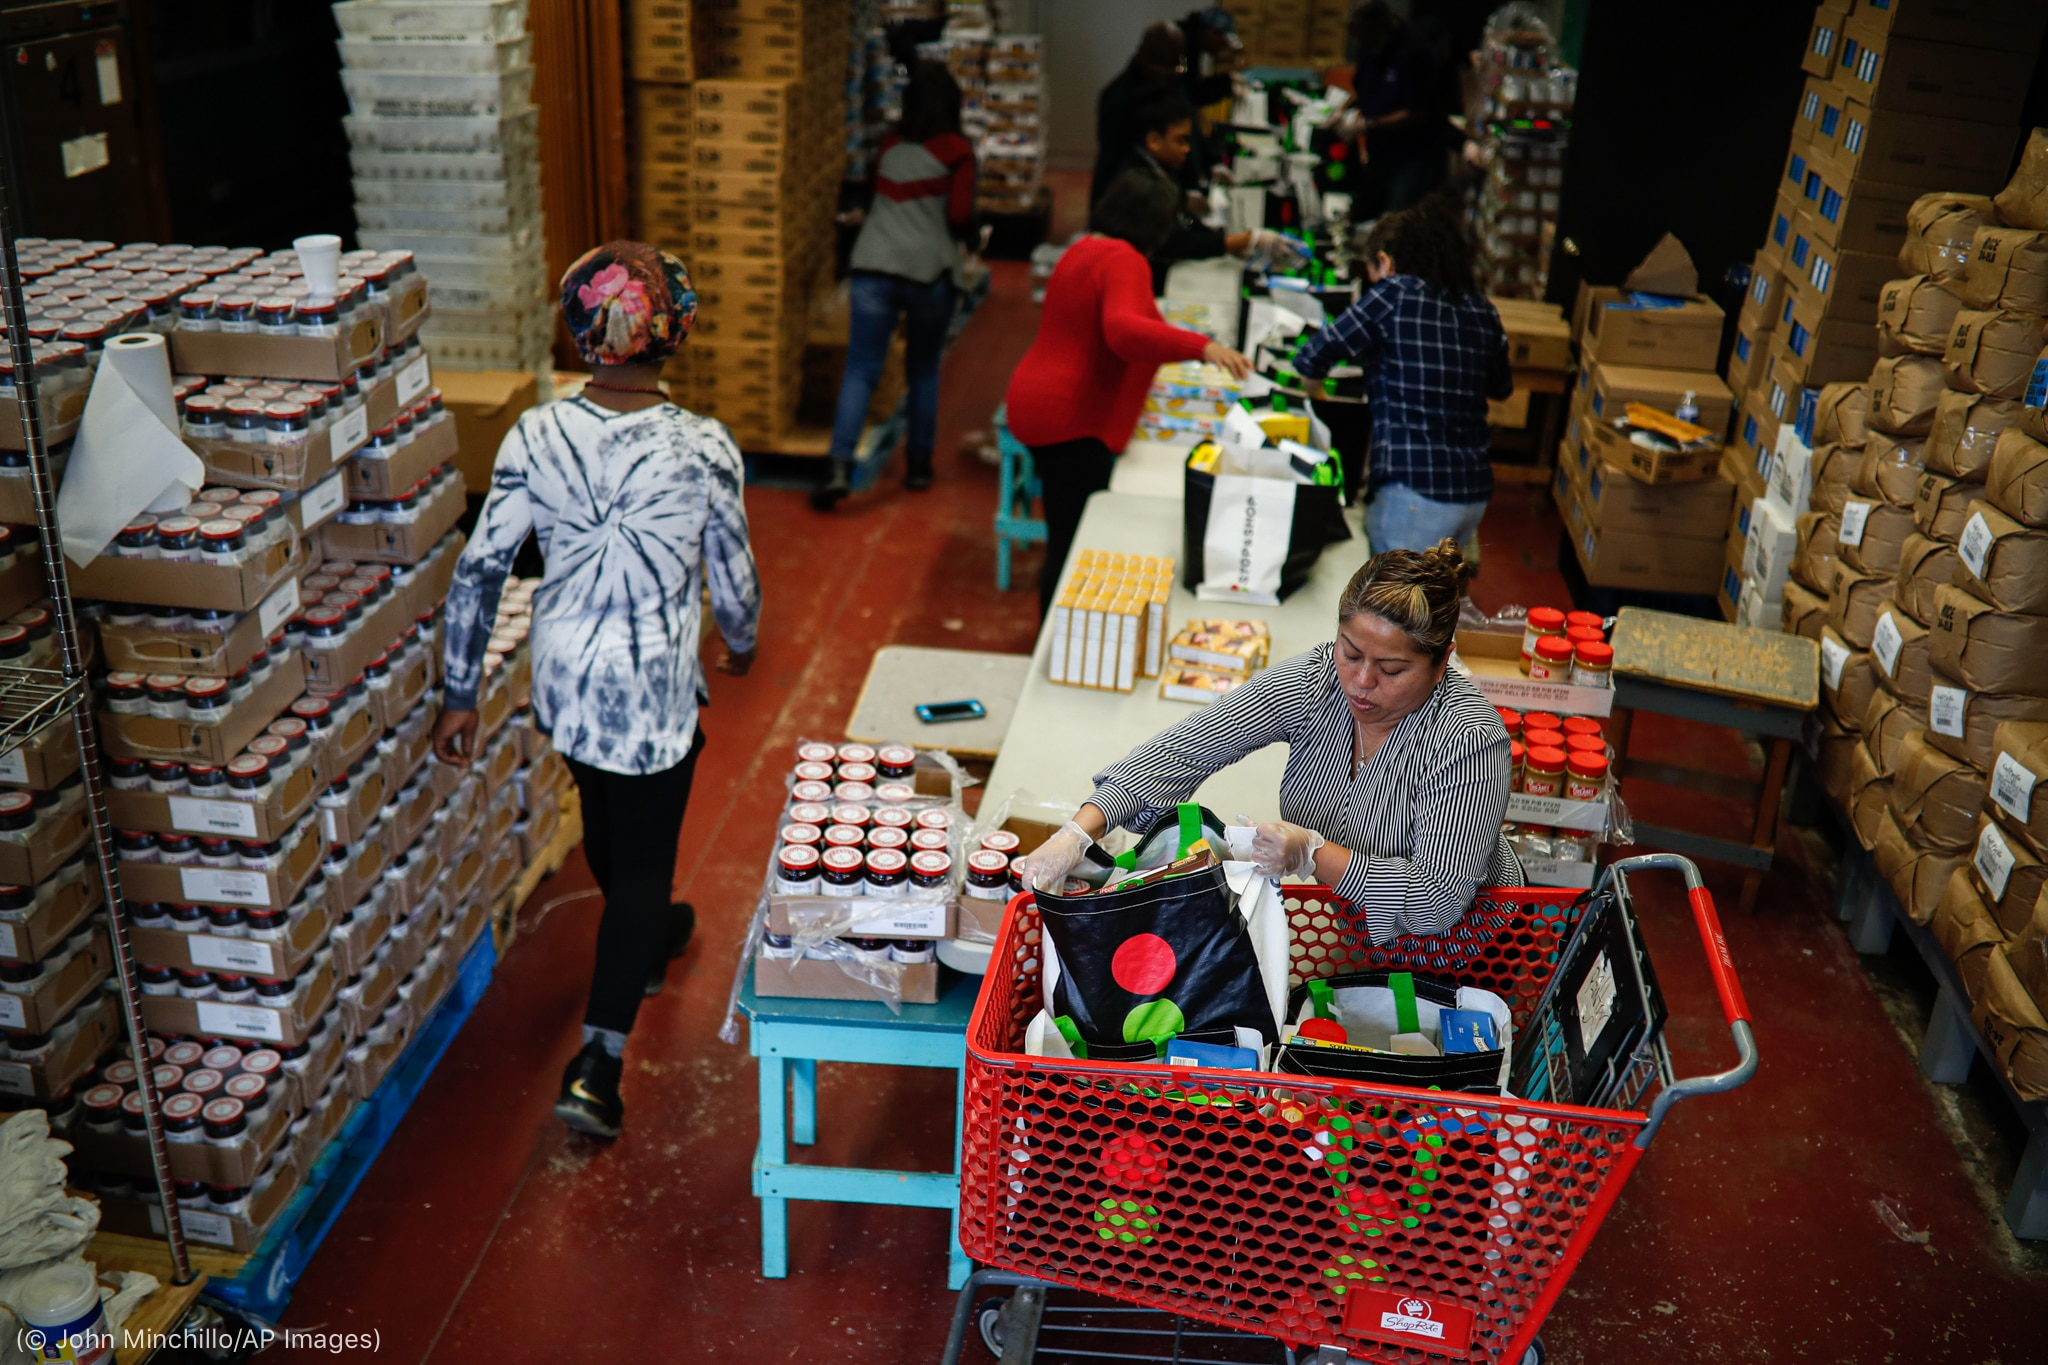 People next to stacks of groceries bagging groceries (© John Minchillo/AP Images)